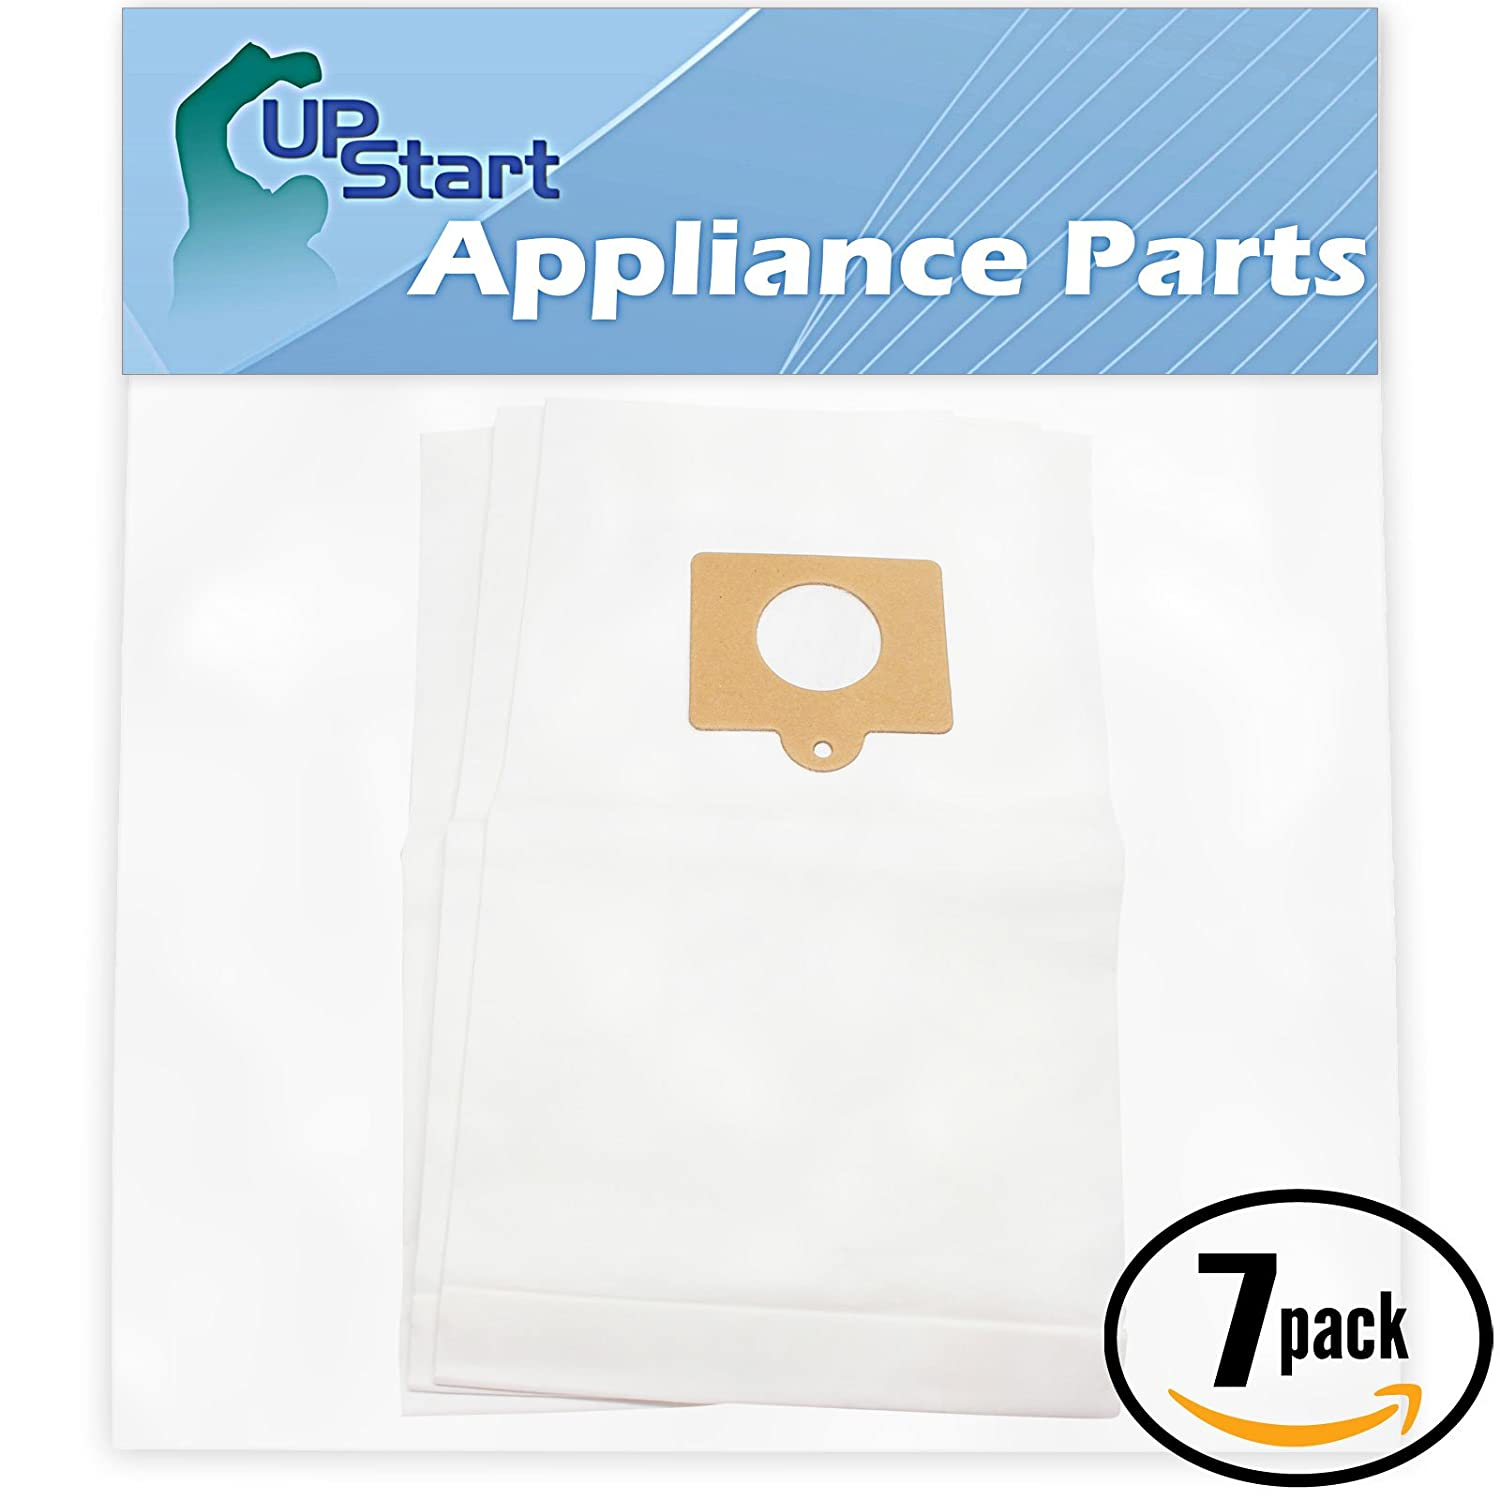 21 Replacement Kenmore 20-50555 Vacuum Bags - Compatible Kenmore 50558, 5055, 50557, Type C Vacuum Bags (7-Pack, 3 Bags Per Pack) Upstart Battery